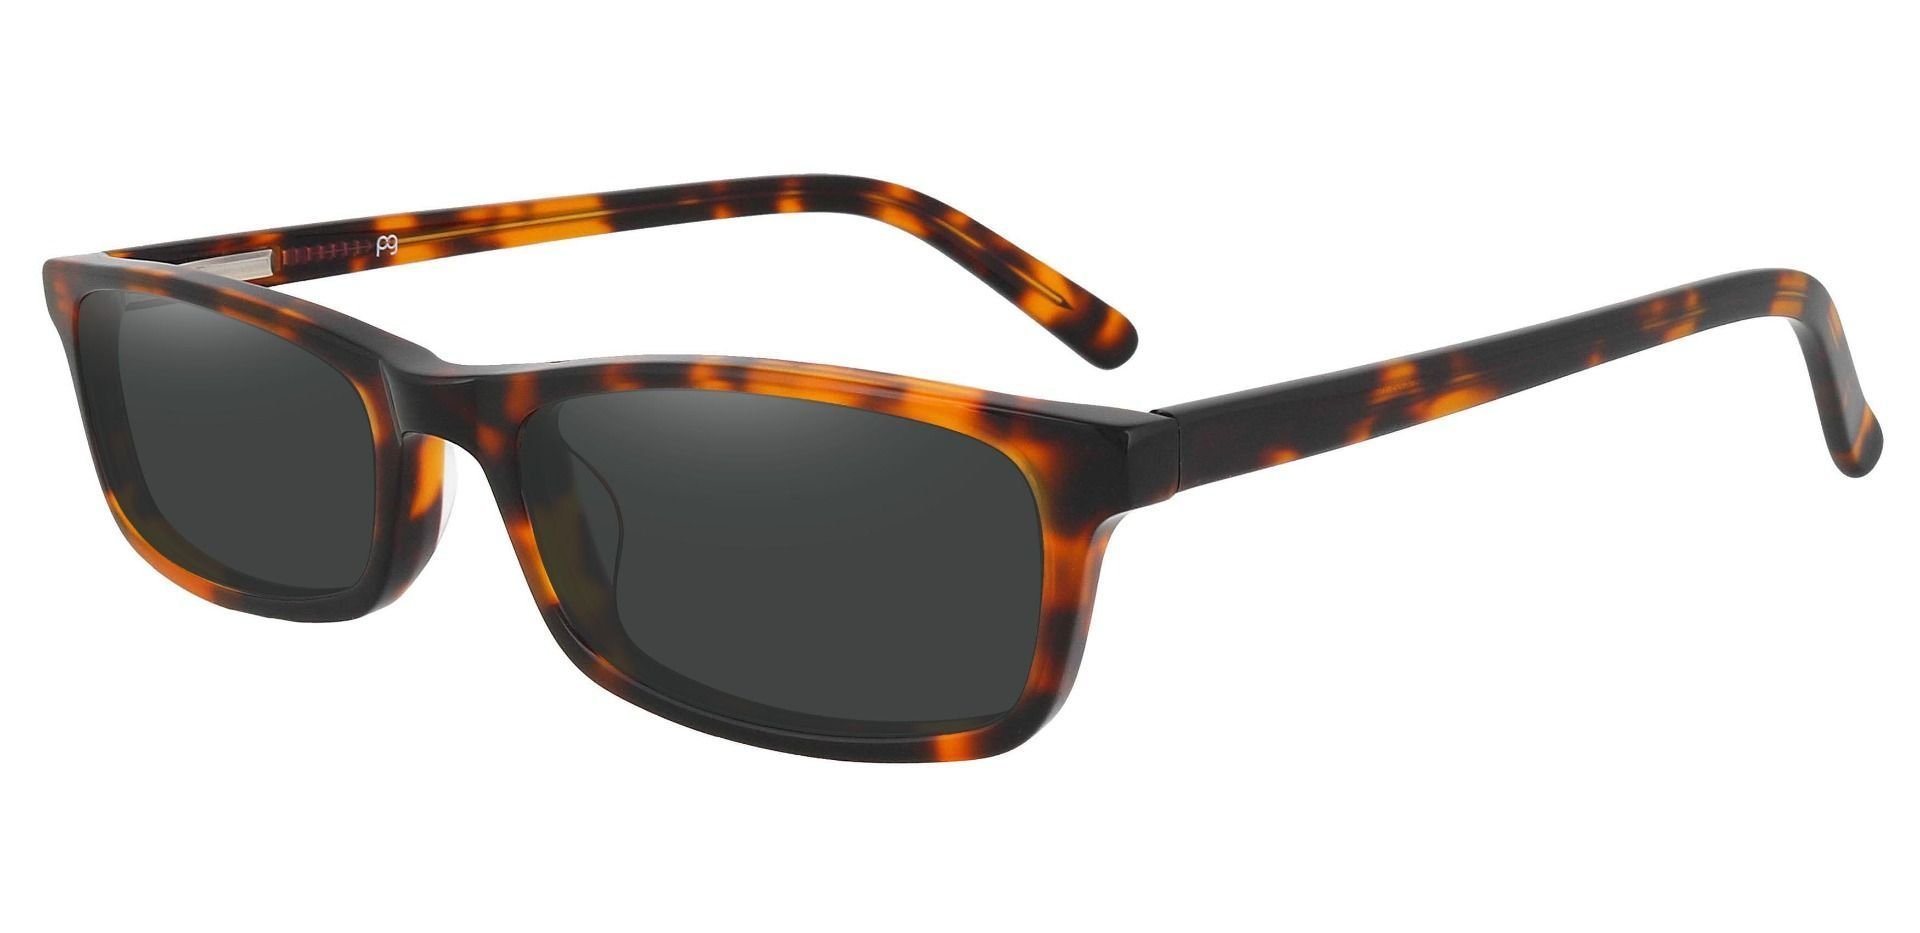 Palisades Rectangle Non-Rx Sunglasses - Tortoise Frame With Gray Lenses